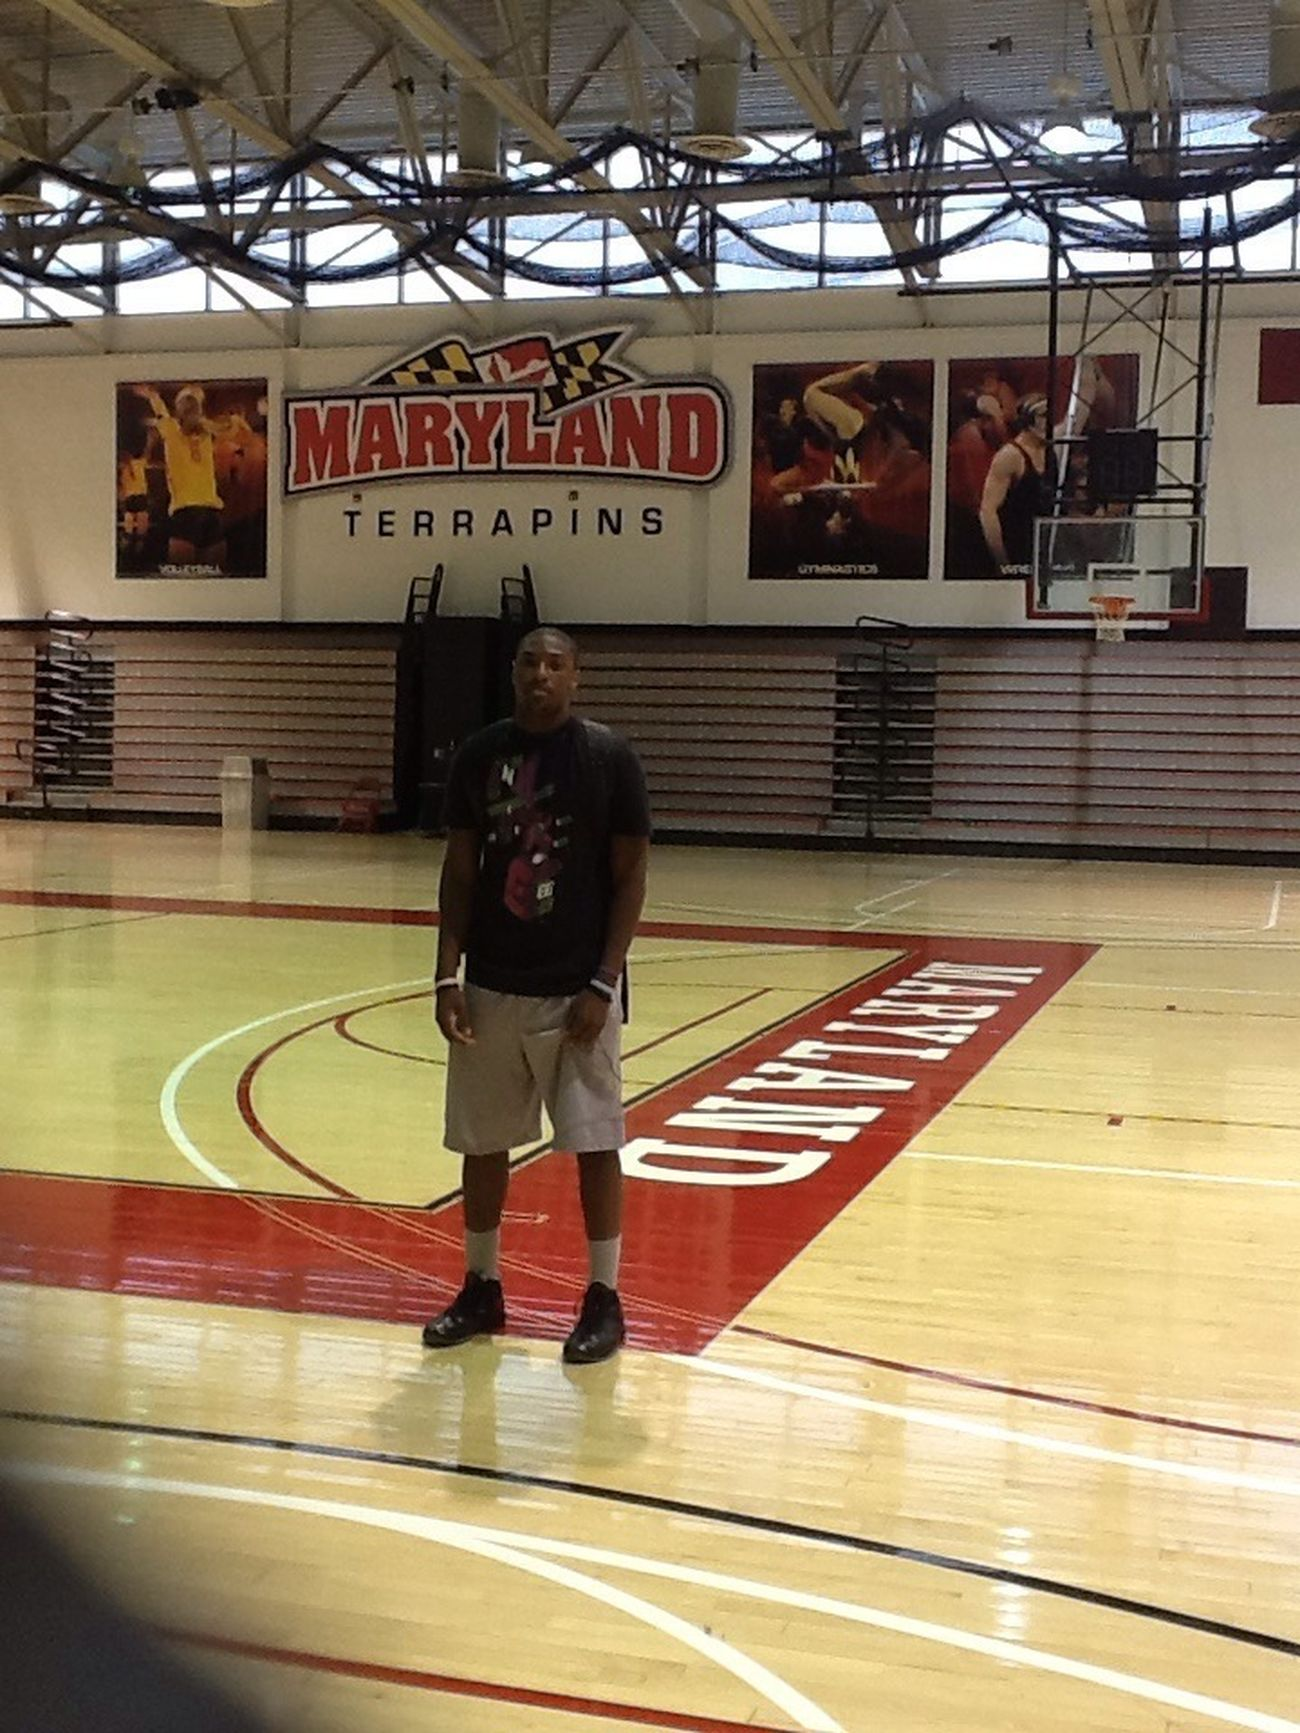 Visit to University of Maryland